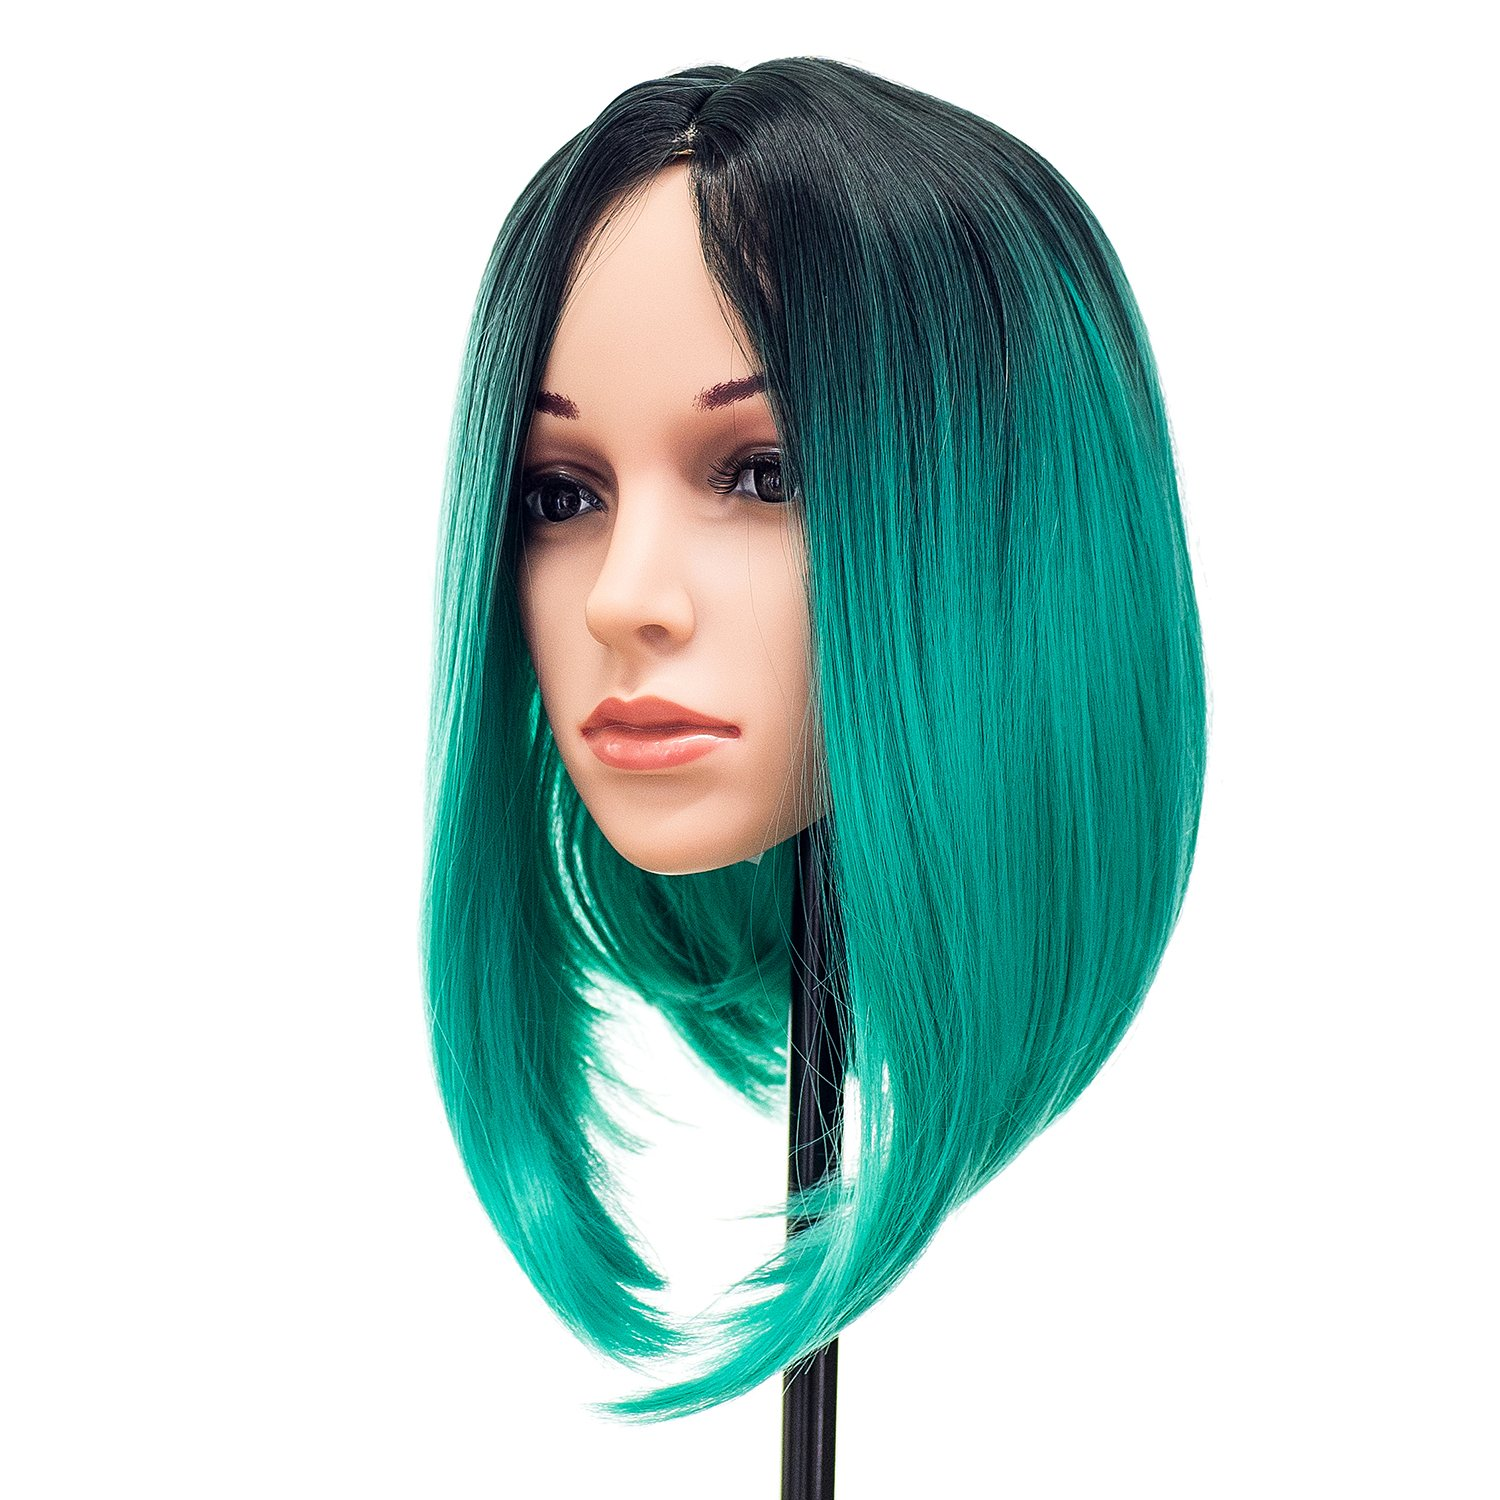 SWACC Ombre Colors Short Hair Costume Wigs Straight Bob Wig for Cosplay Party (Teal Blue) by SWACC